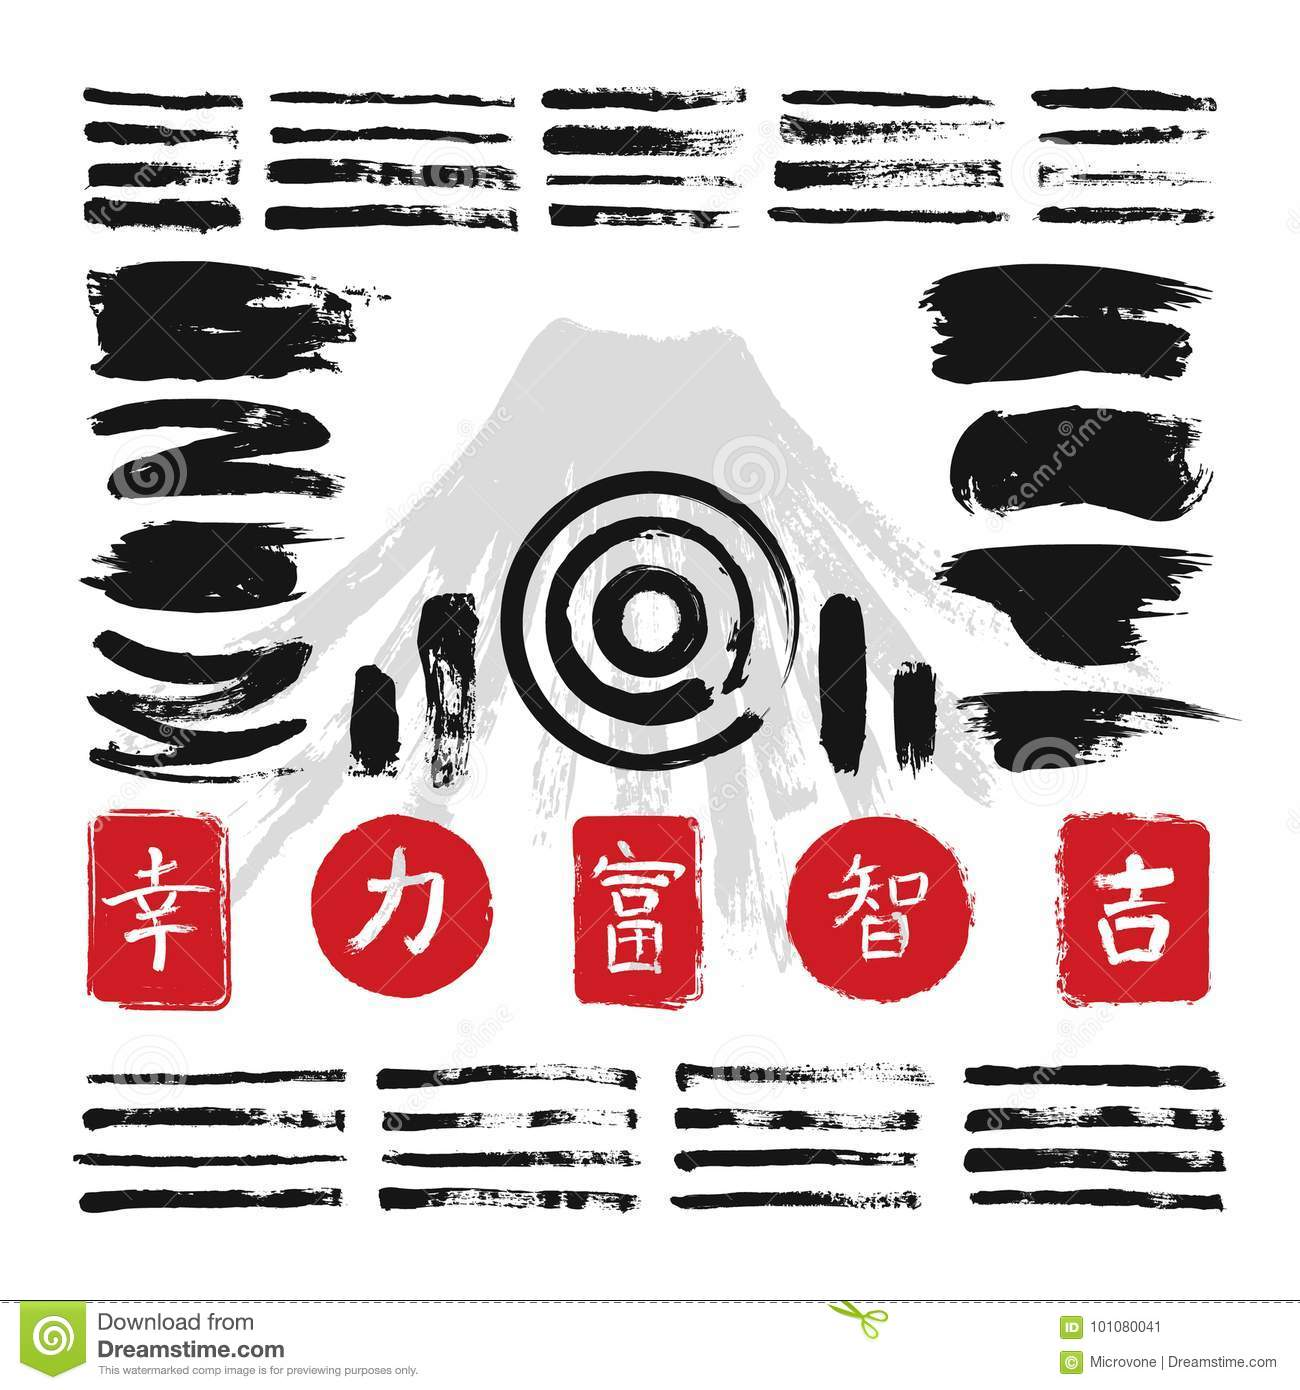 Ink Calligraphy Brushes With Japanese Or Chinese Symbols Vector Set